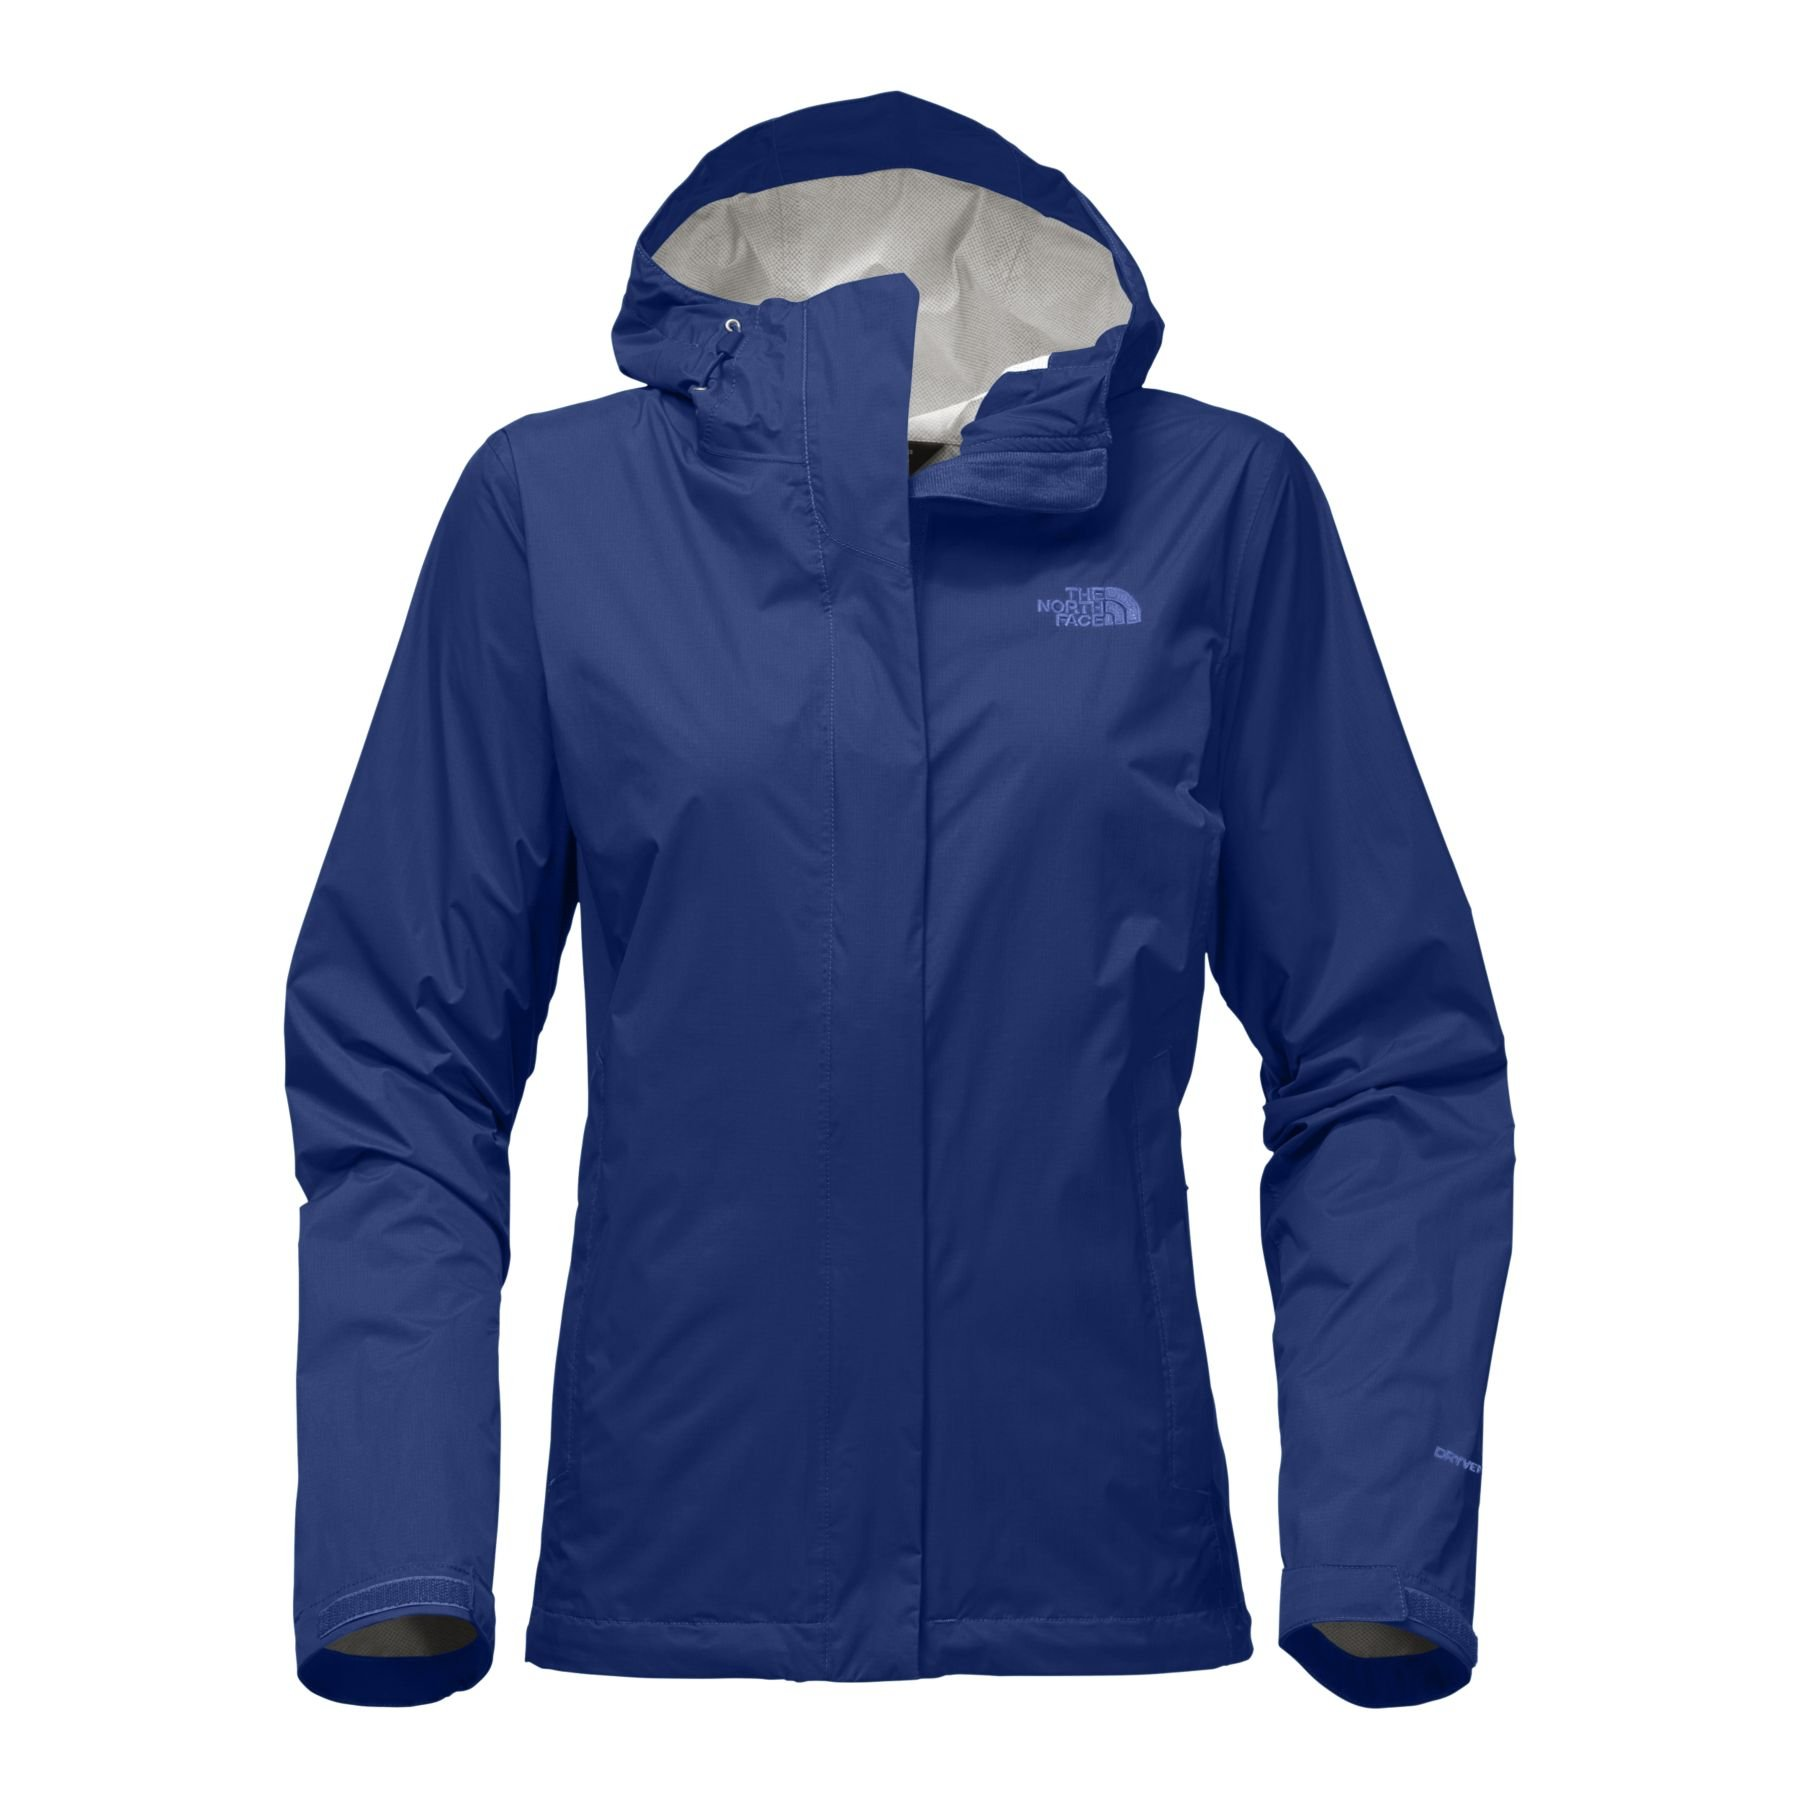 The North Face Women's Venture 2 Jacket Soda Lite Blue - 3XL by The North Face